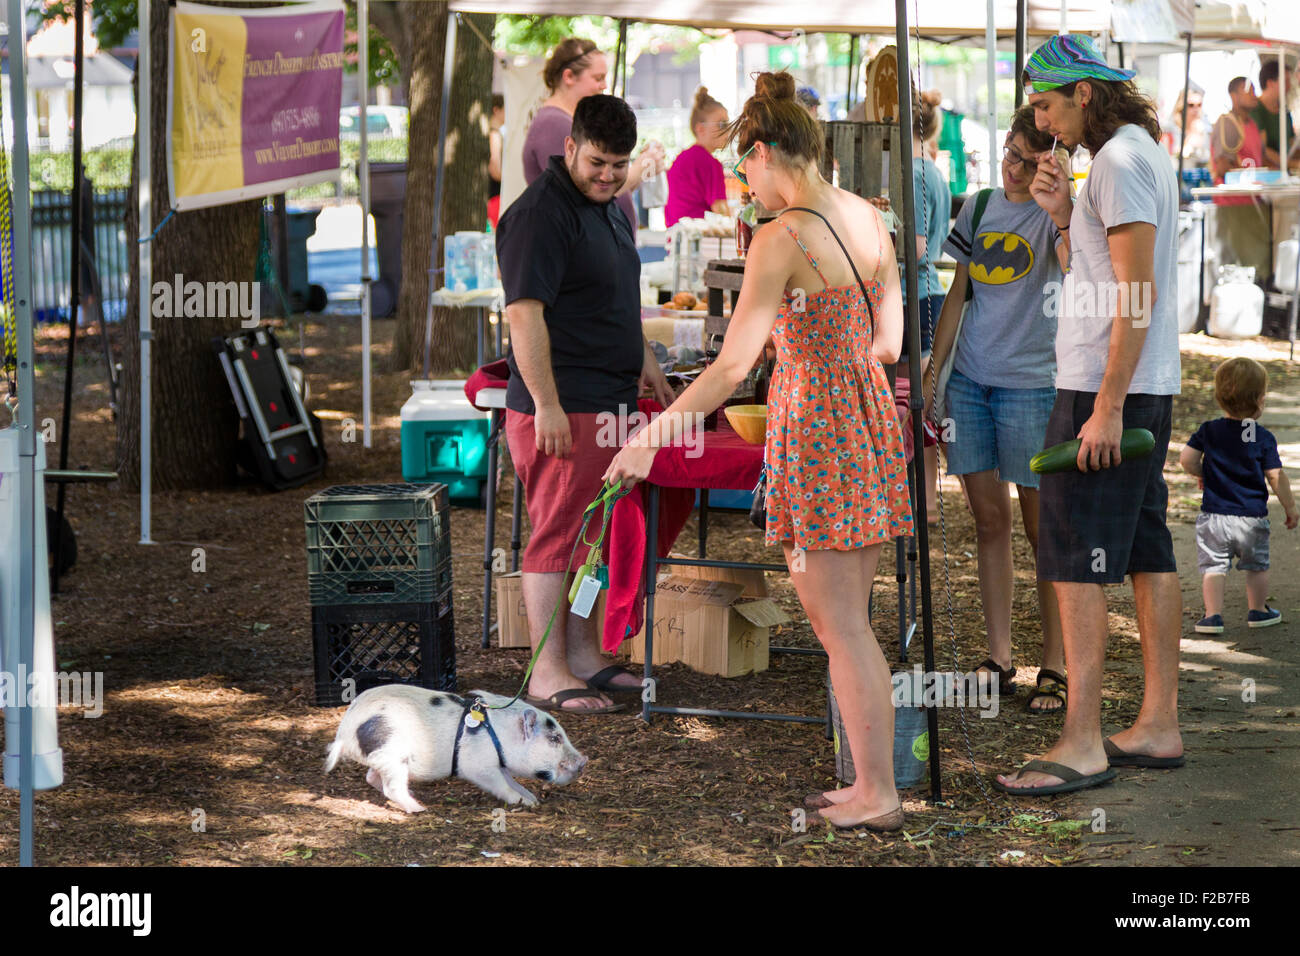 Teacup Pig Stock Photos & Teacup Pig Stock Images - Alamy